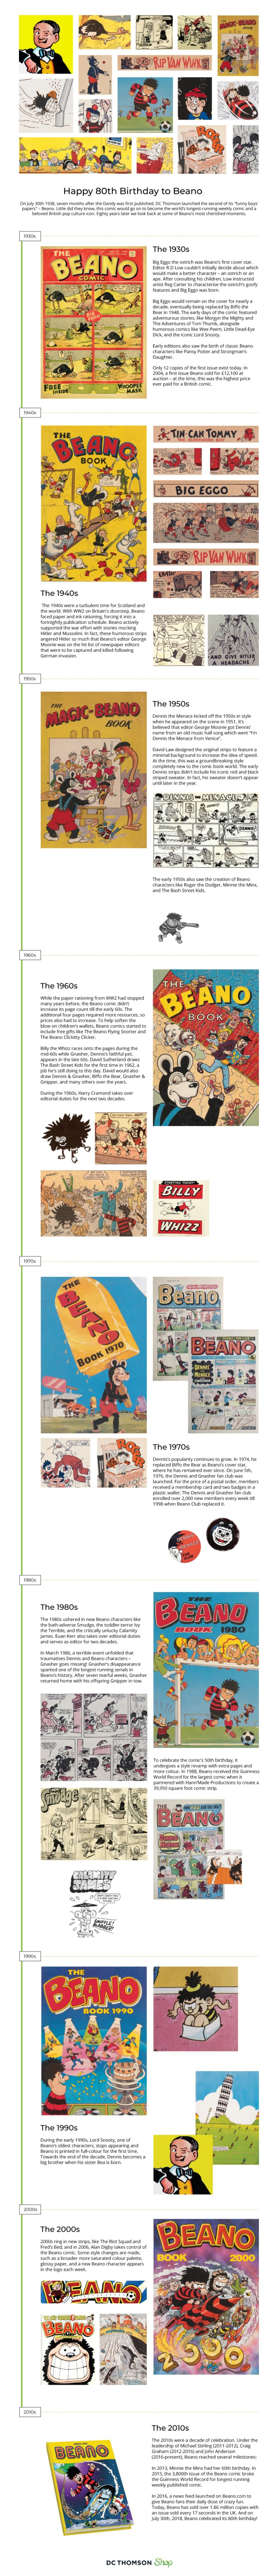 DC Thomson - Beano 80th